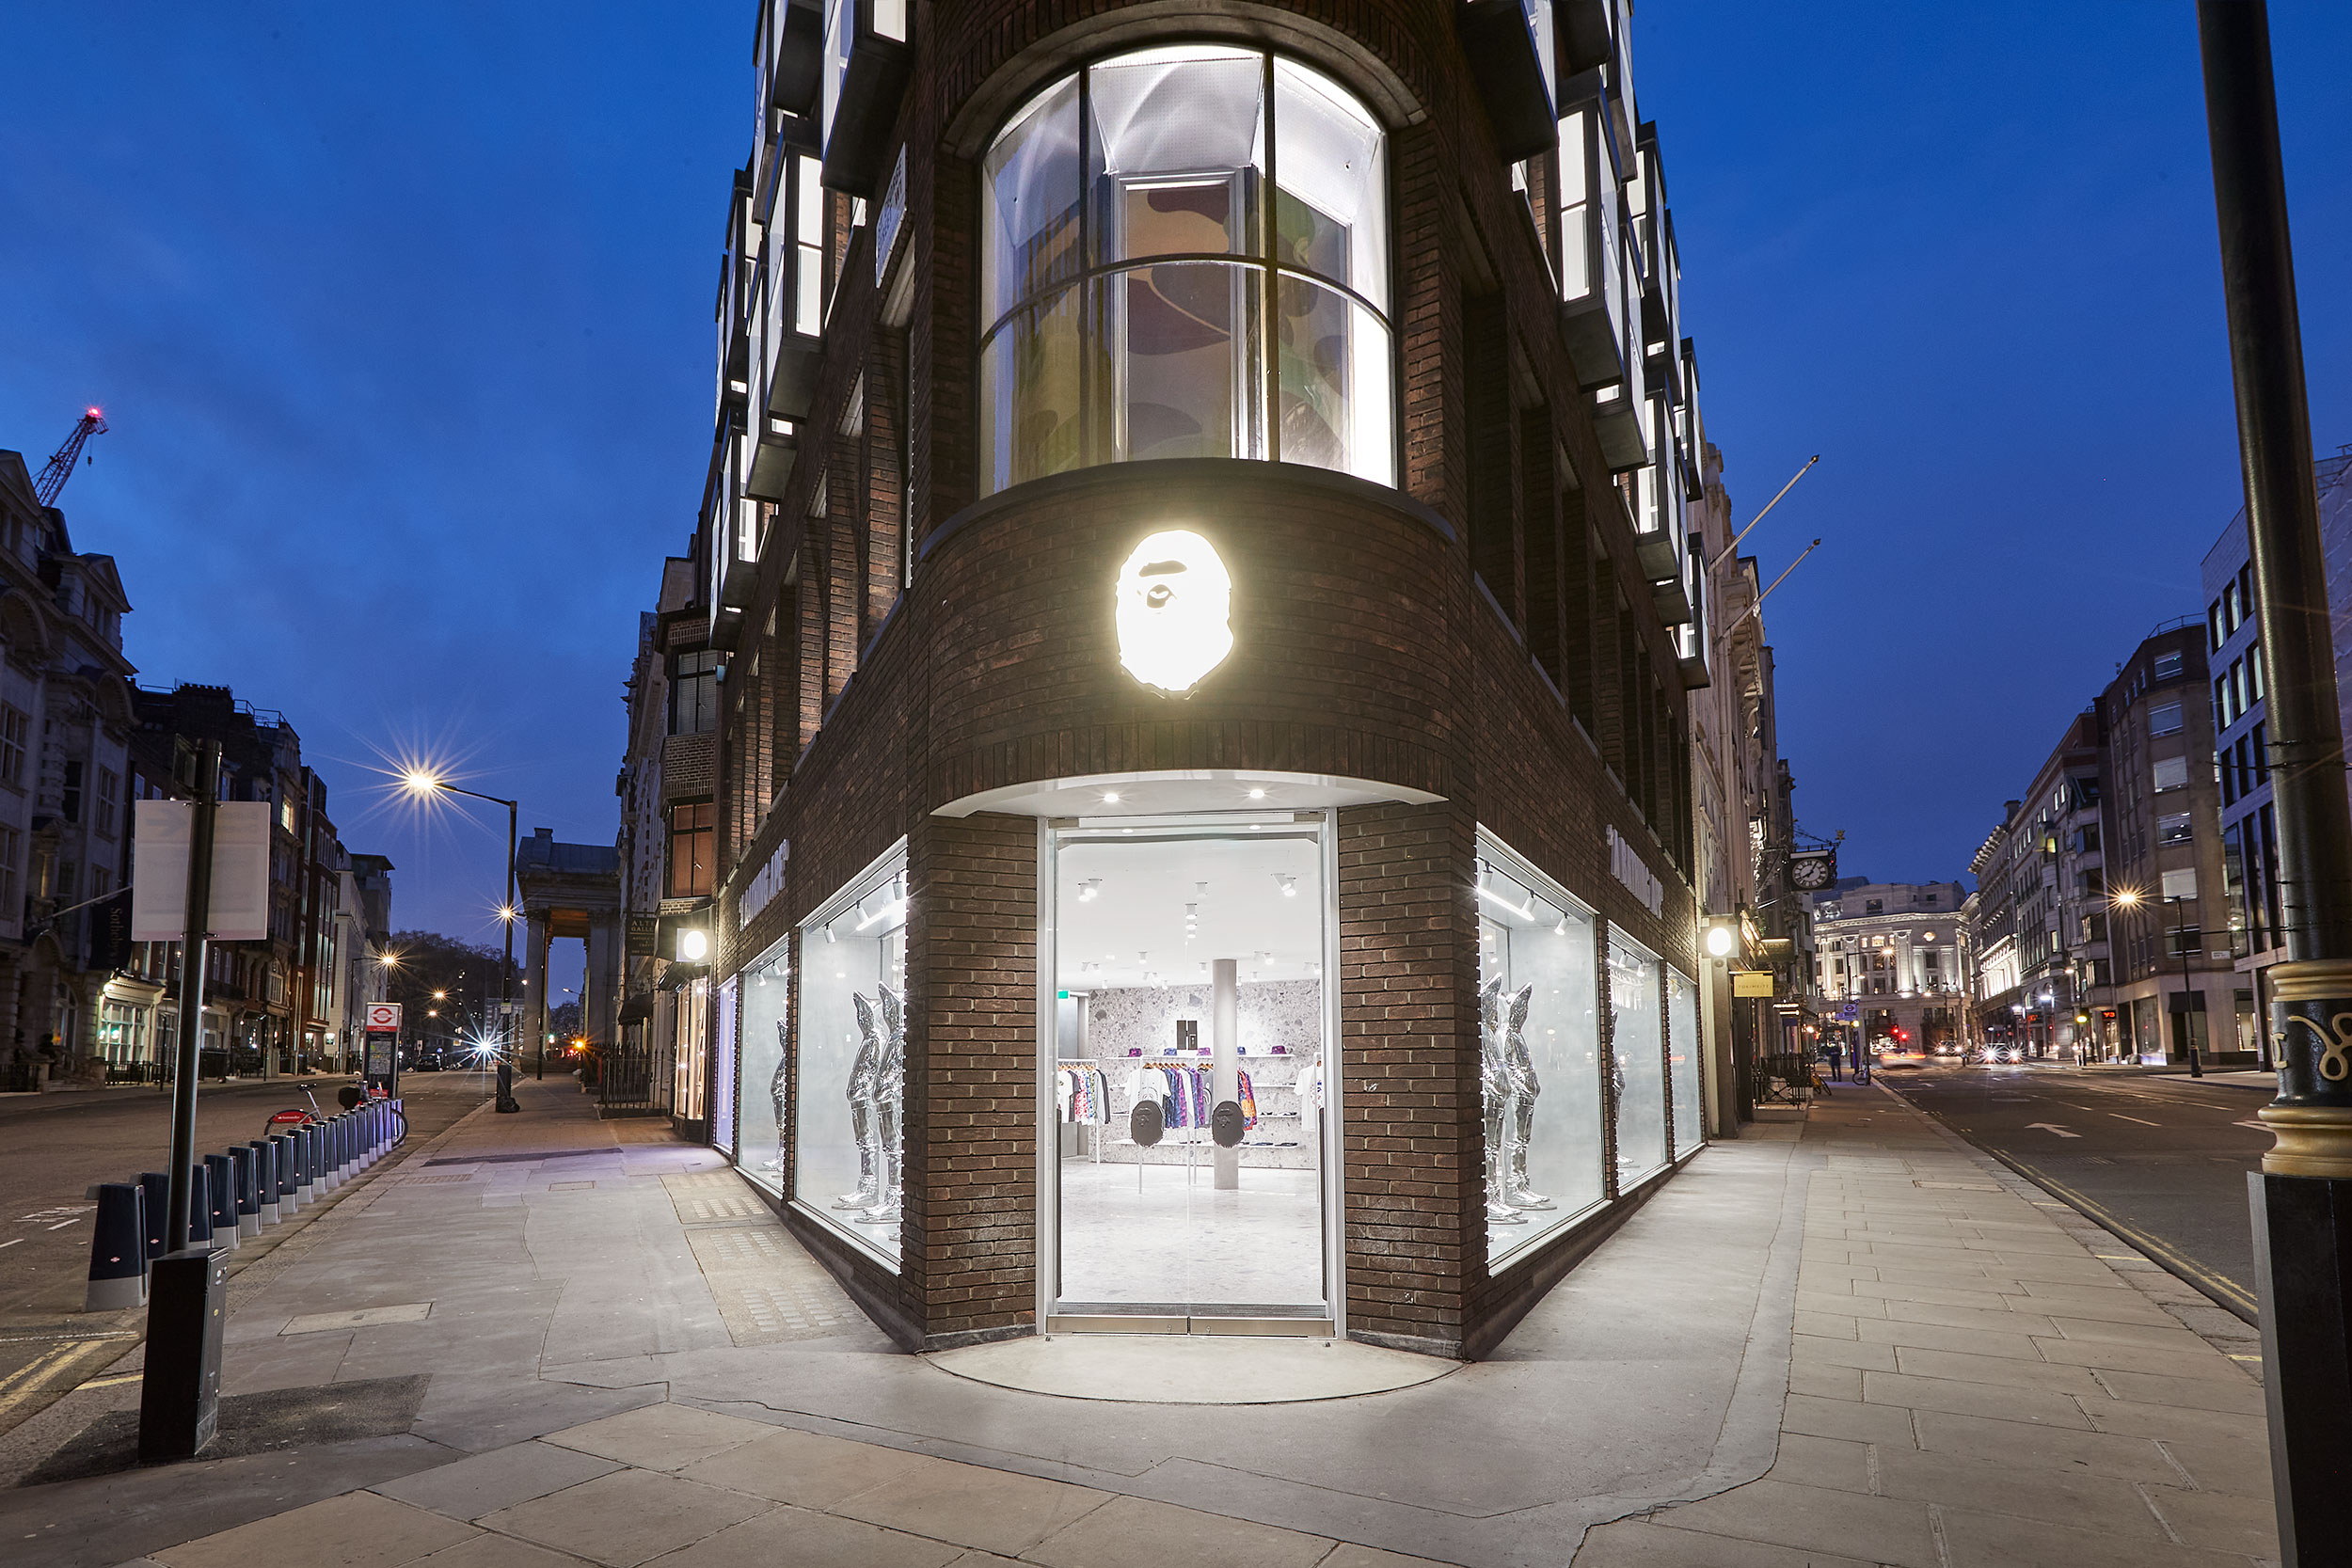 BAPE opens its Biggest Ever Store in Central London